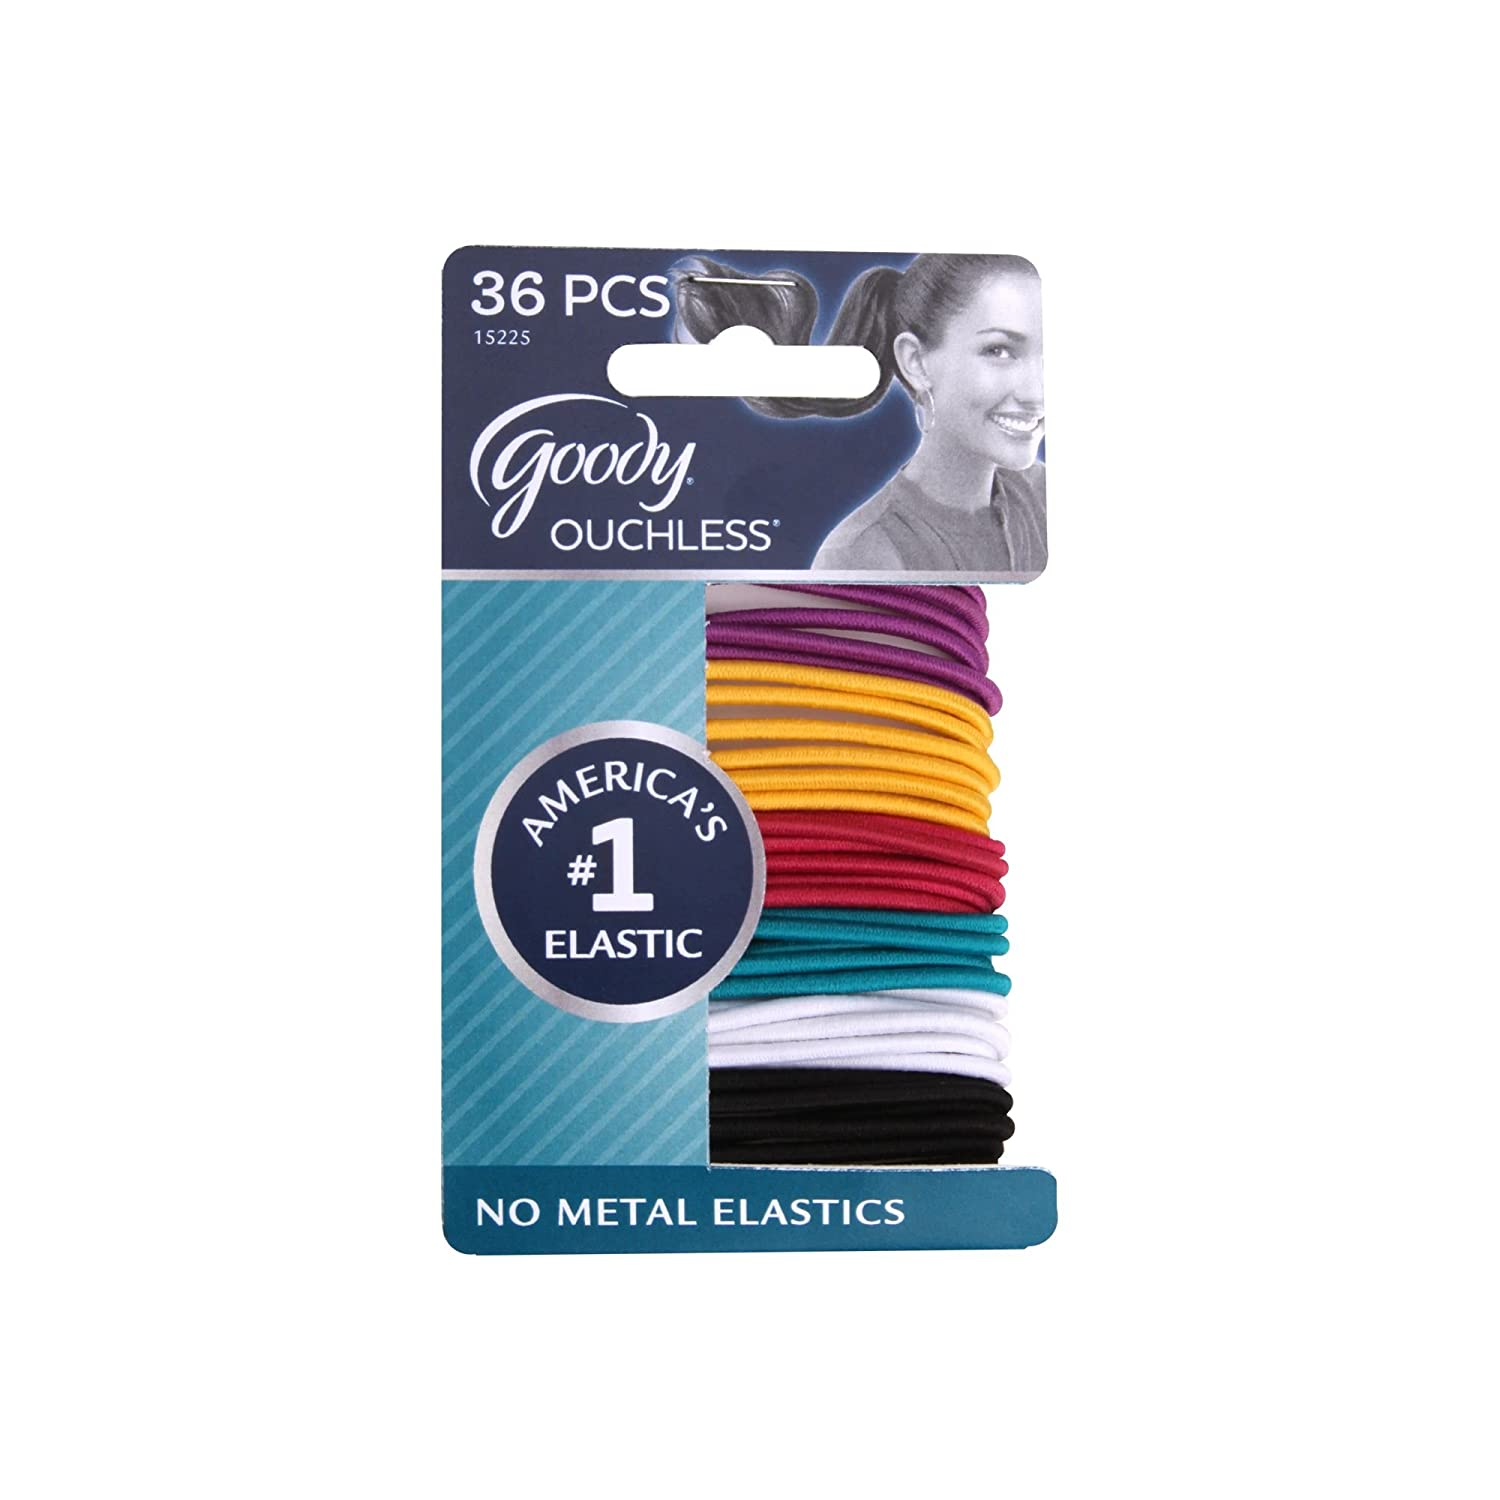 Goody Ouchless No Metal Hair Elastics, Brooke, 2 mm, 36 Count 15225